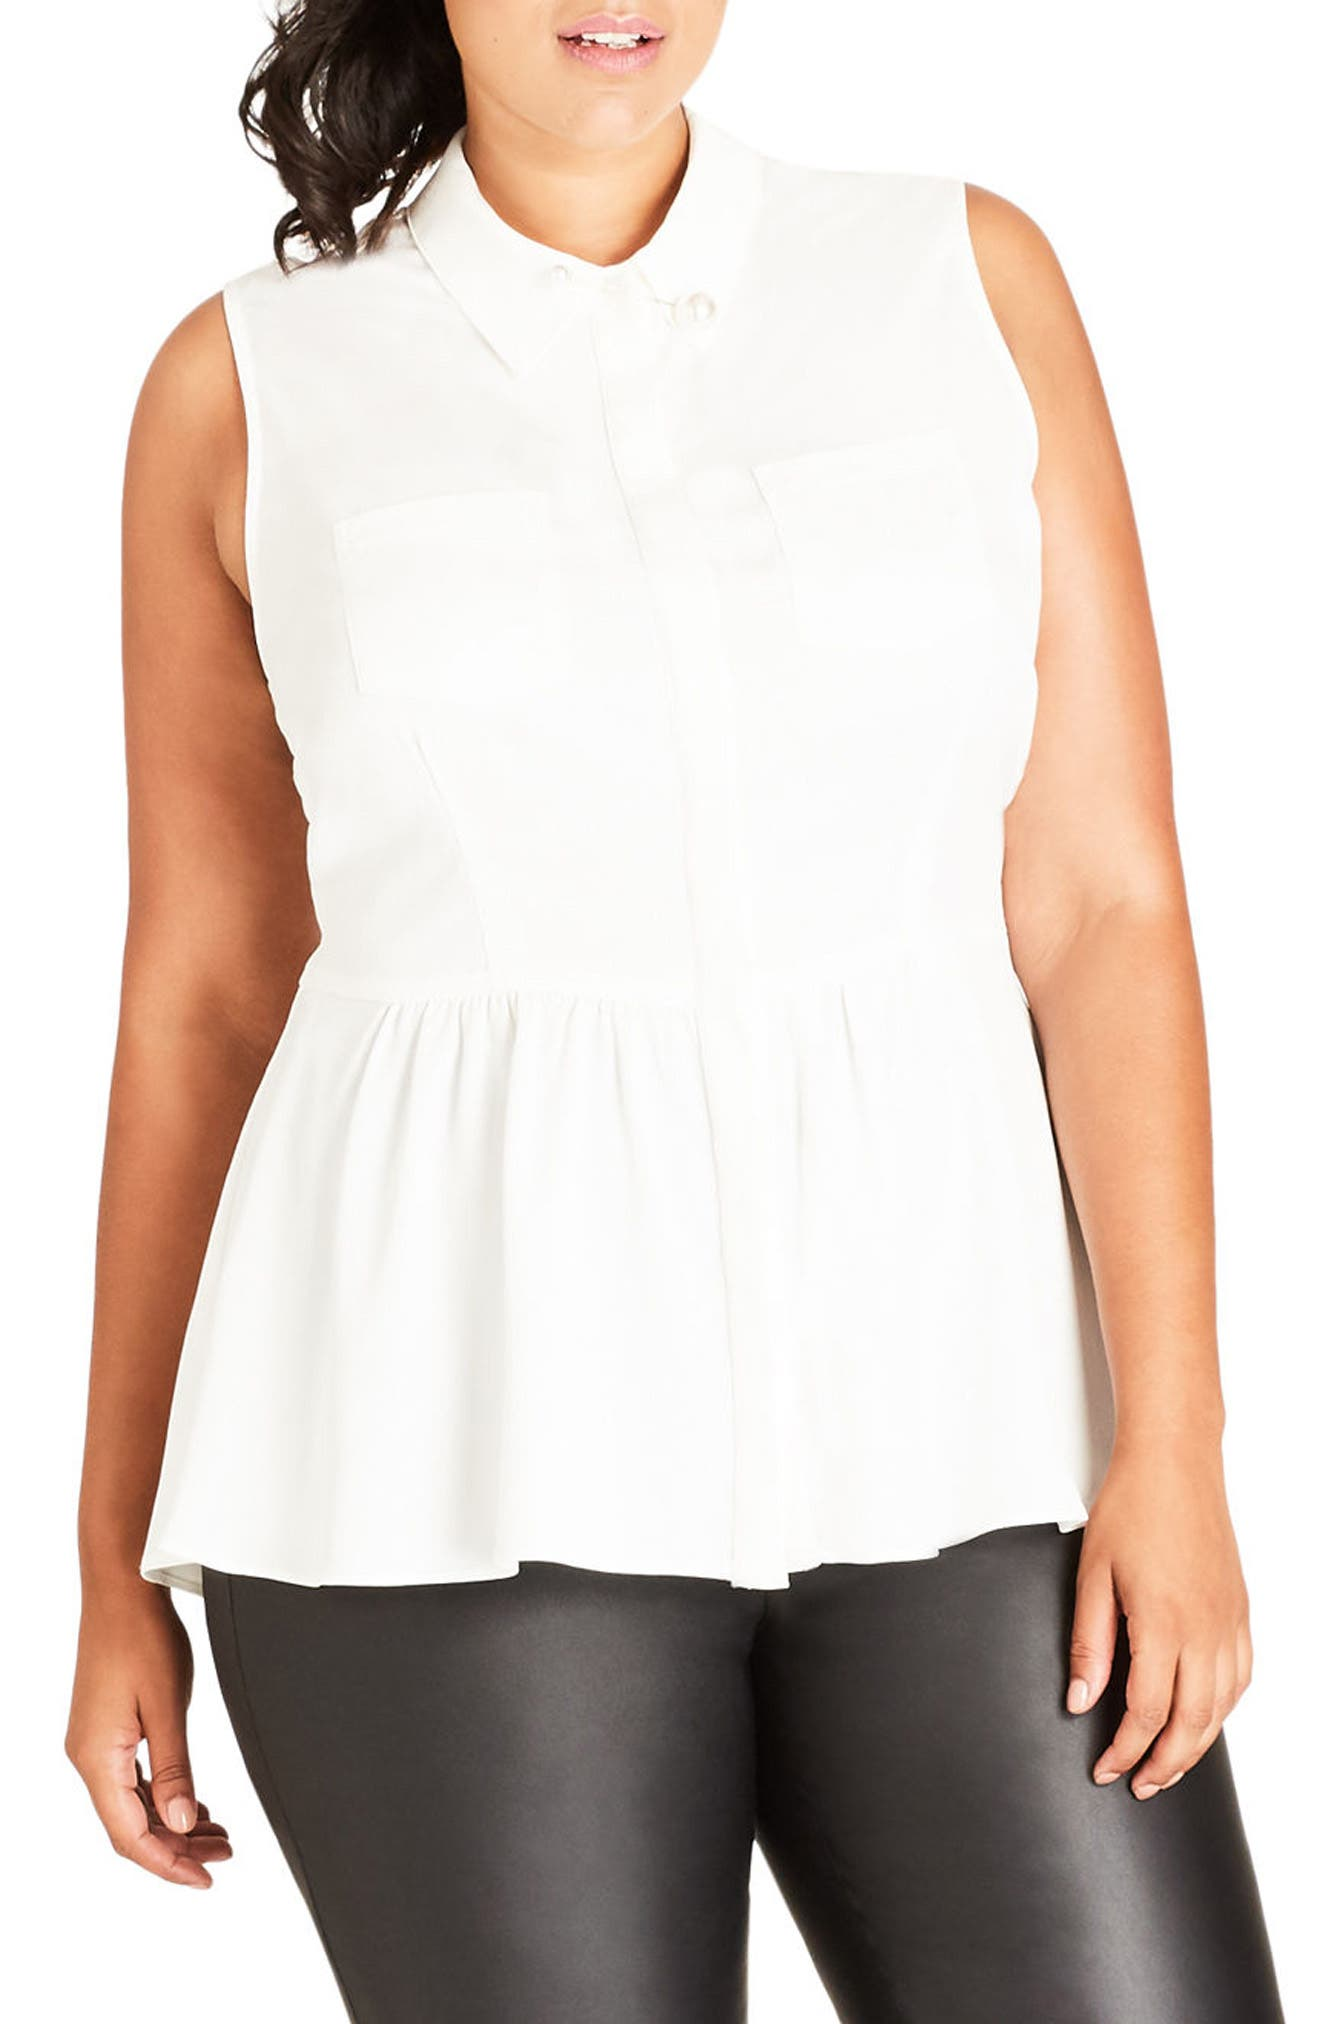 Alternate Image 1 Selected - City Chic High/Low Ruffle Tank (Plus Size)